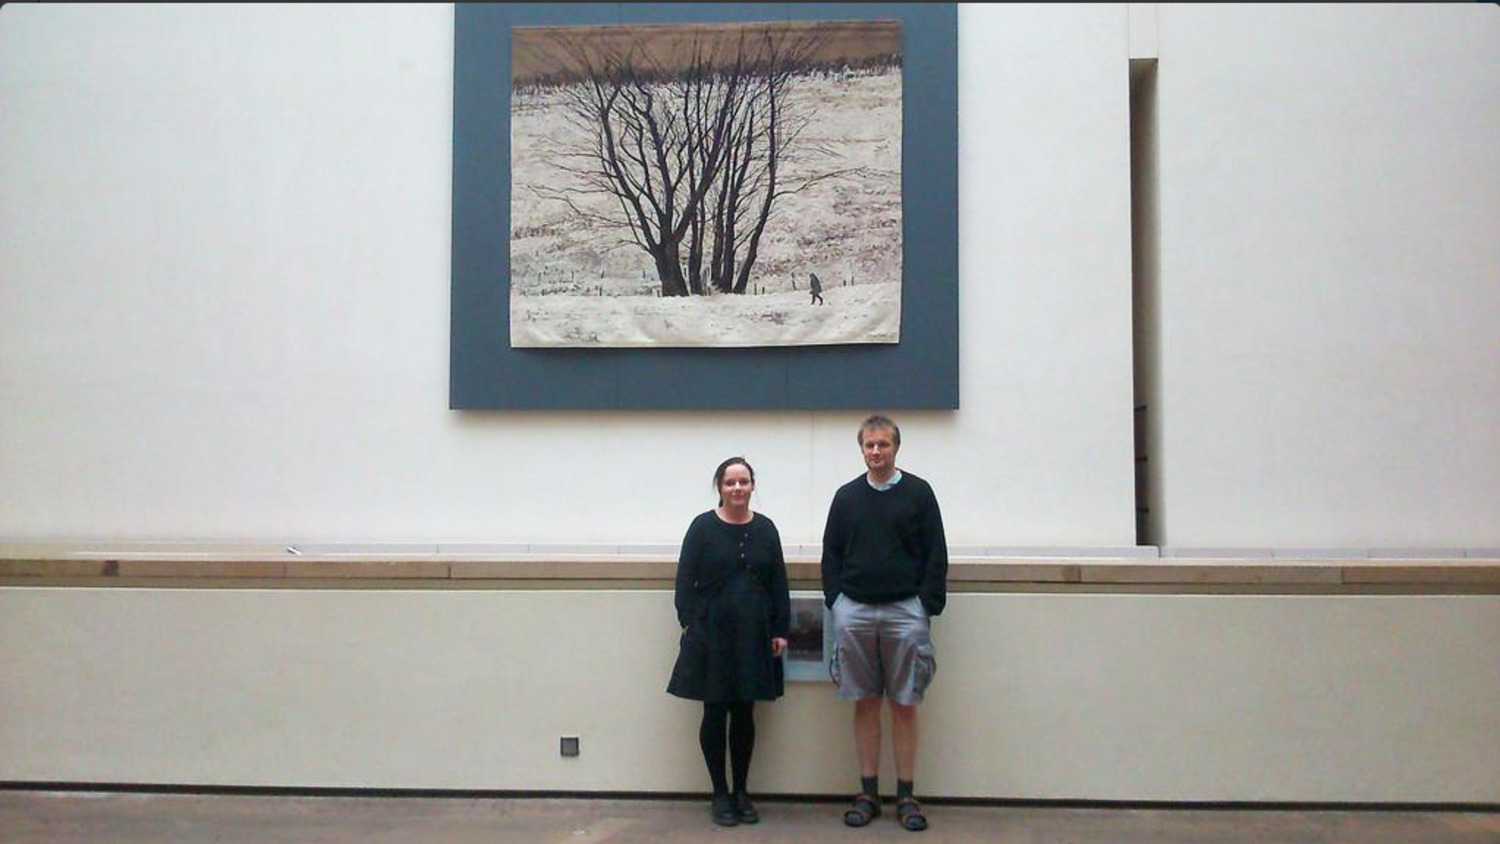 Large Tree Group tapestry hanging at National Museum of Scotland